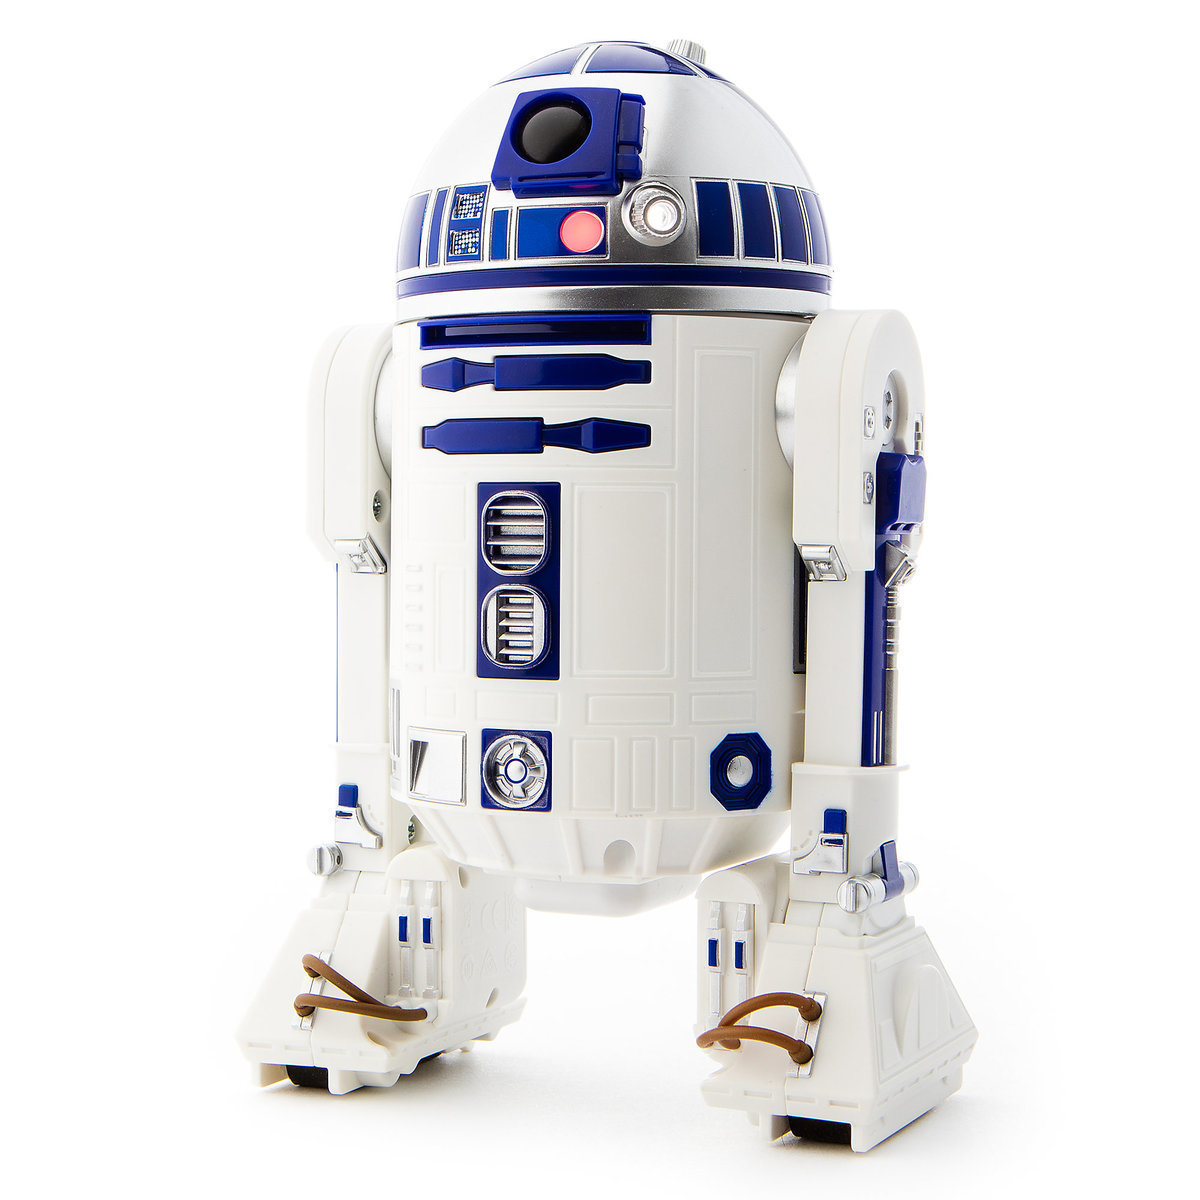 ◎送料込◎ R2-D2 App-Enabled Droid by Sphero - Star Wars